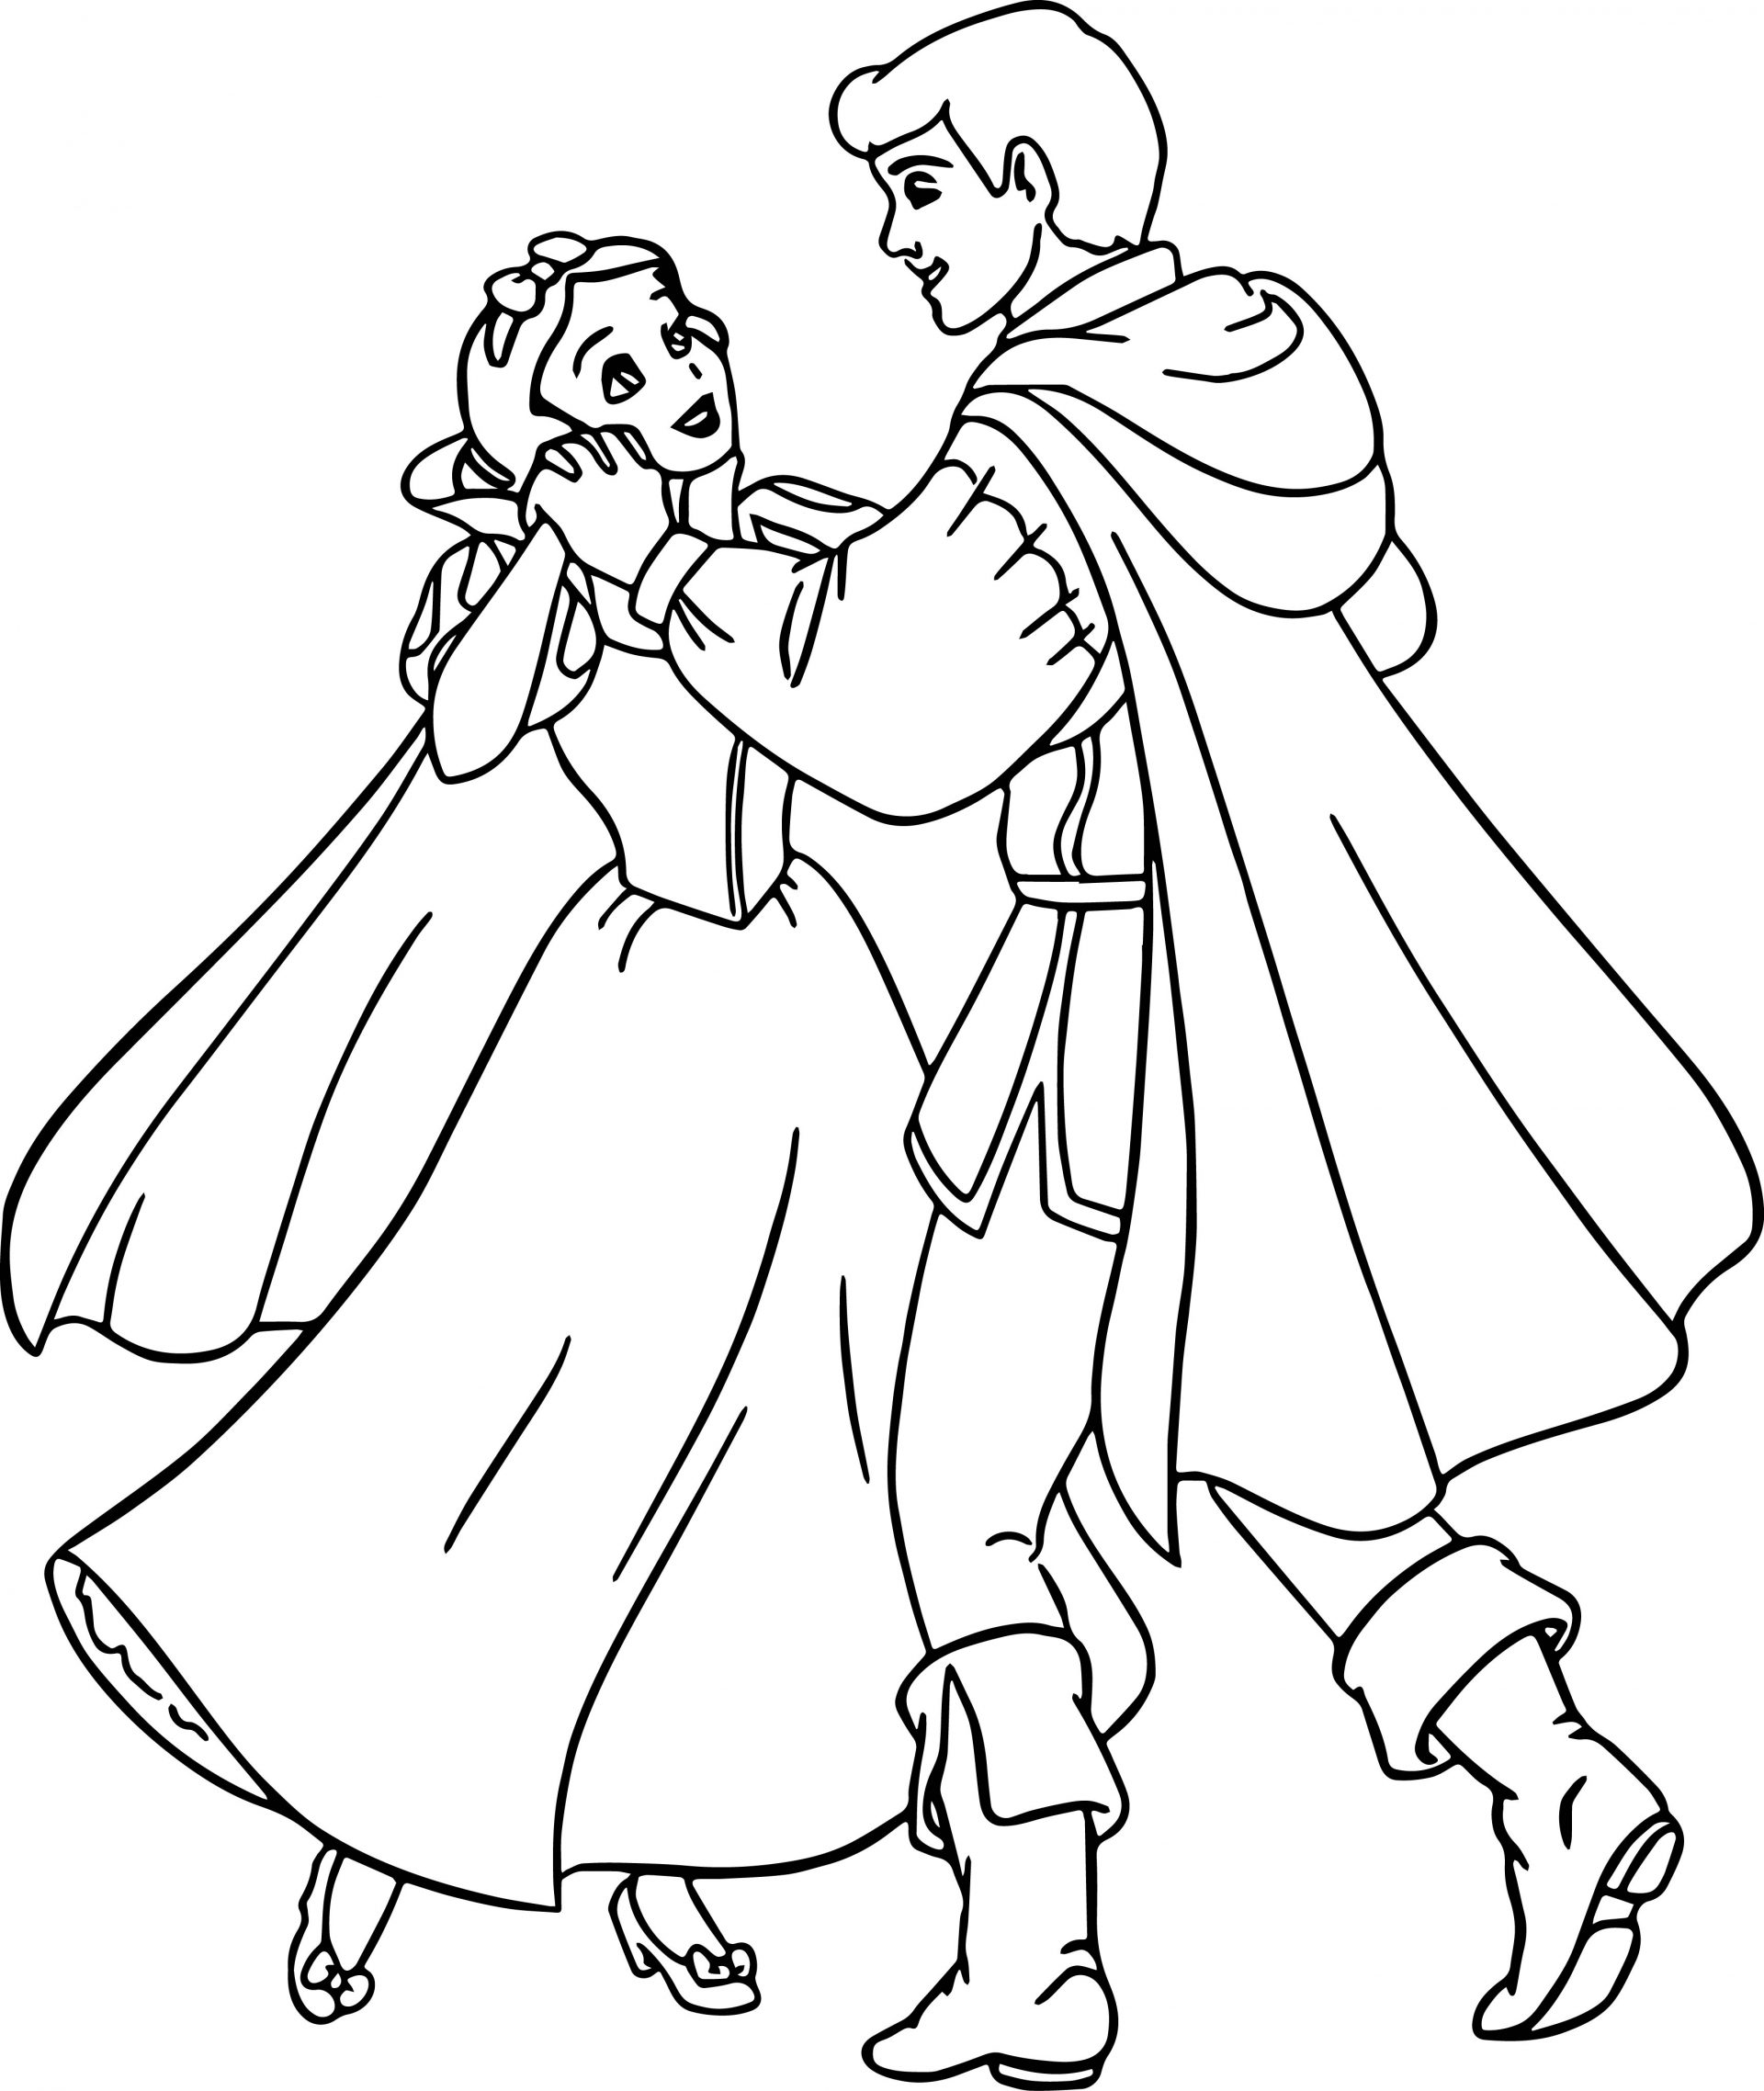 1920x2276 Disney Snow White Coloring Pages Pictures Hd Online And Seven